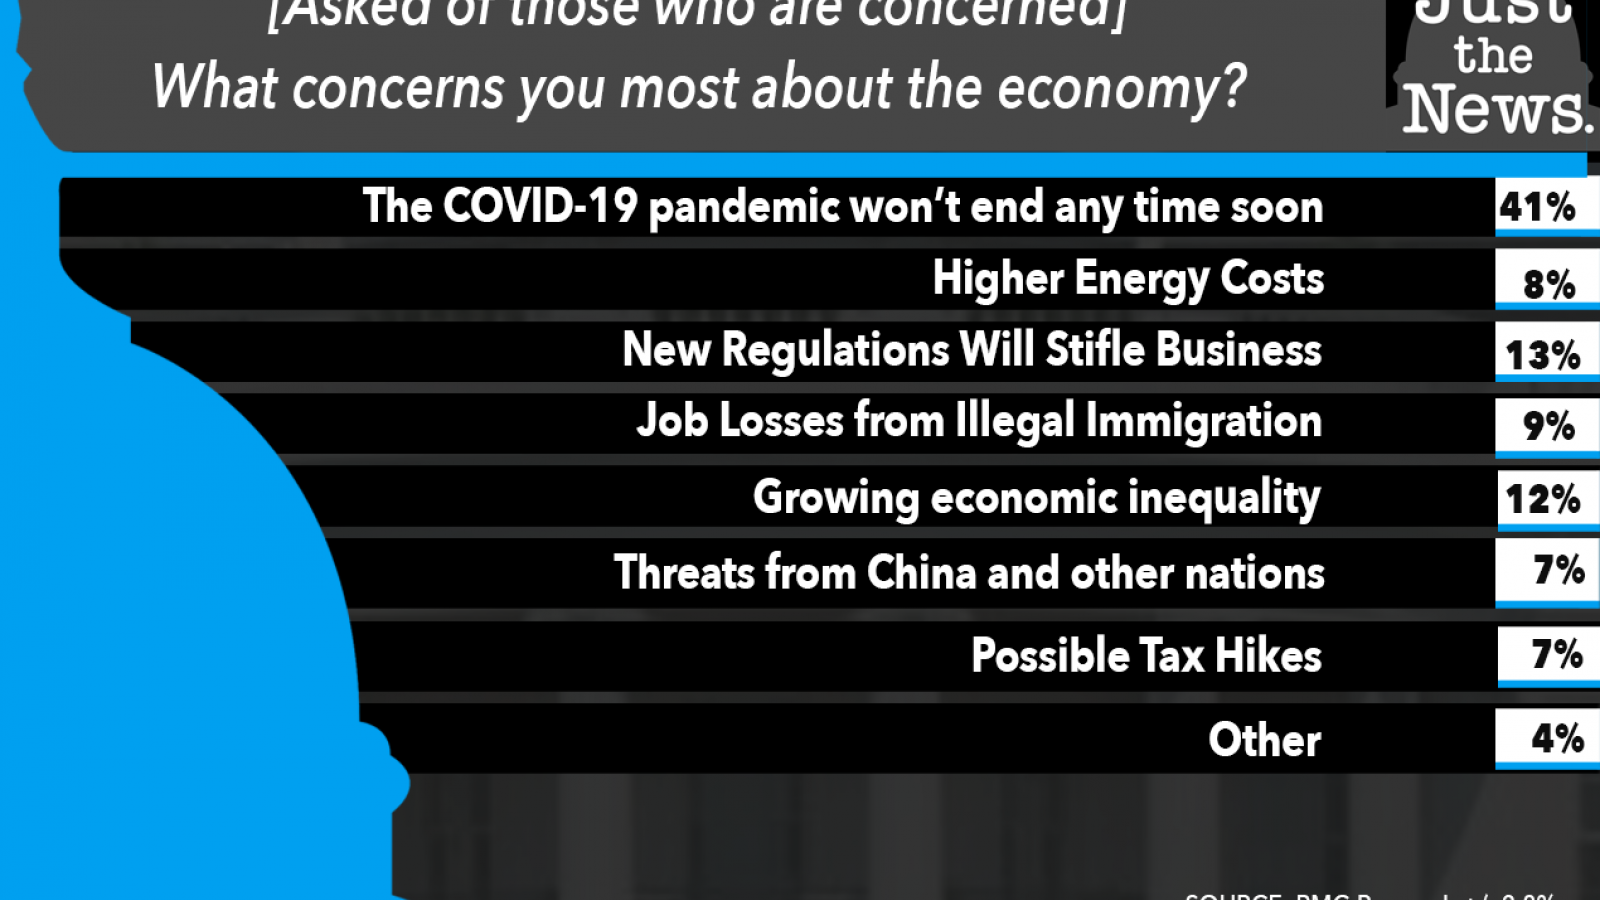 Just the News Poll, What concerns you most about the economy?